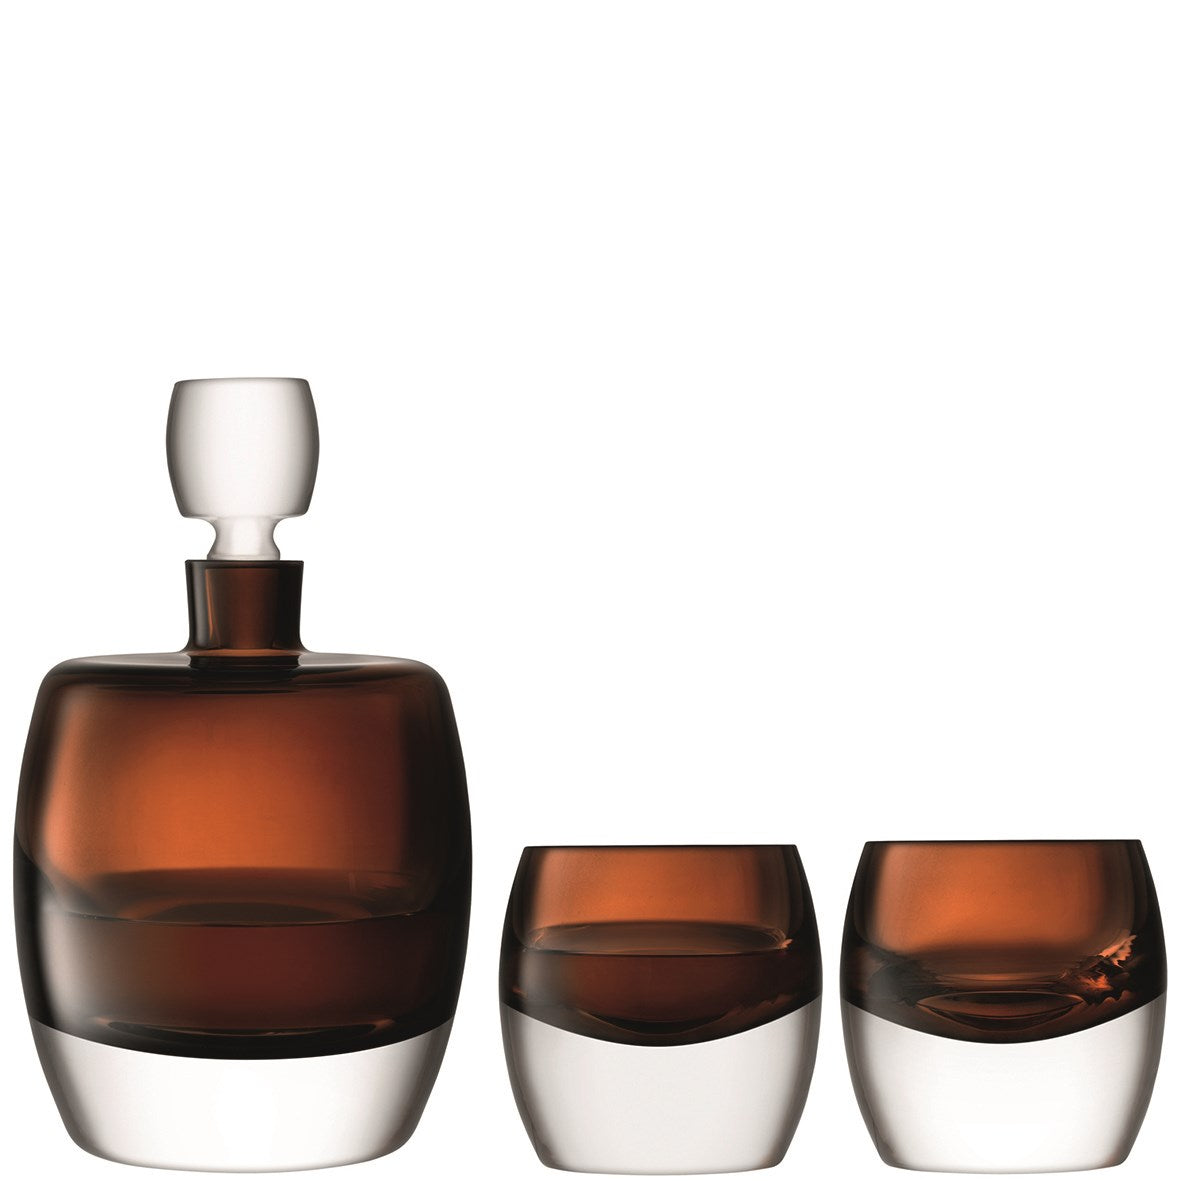 Whiskey Club Decanter & Tumblers Set - Peat